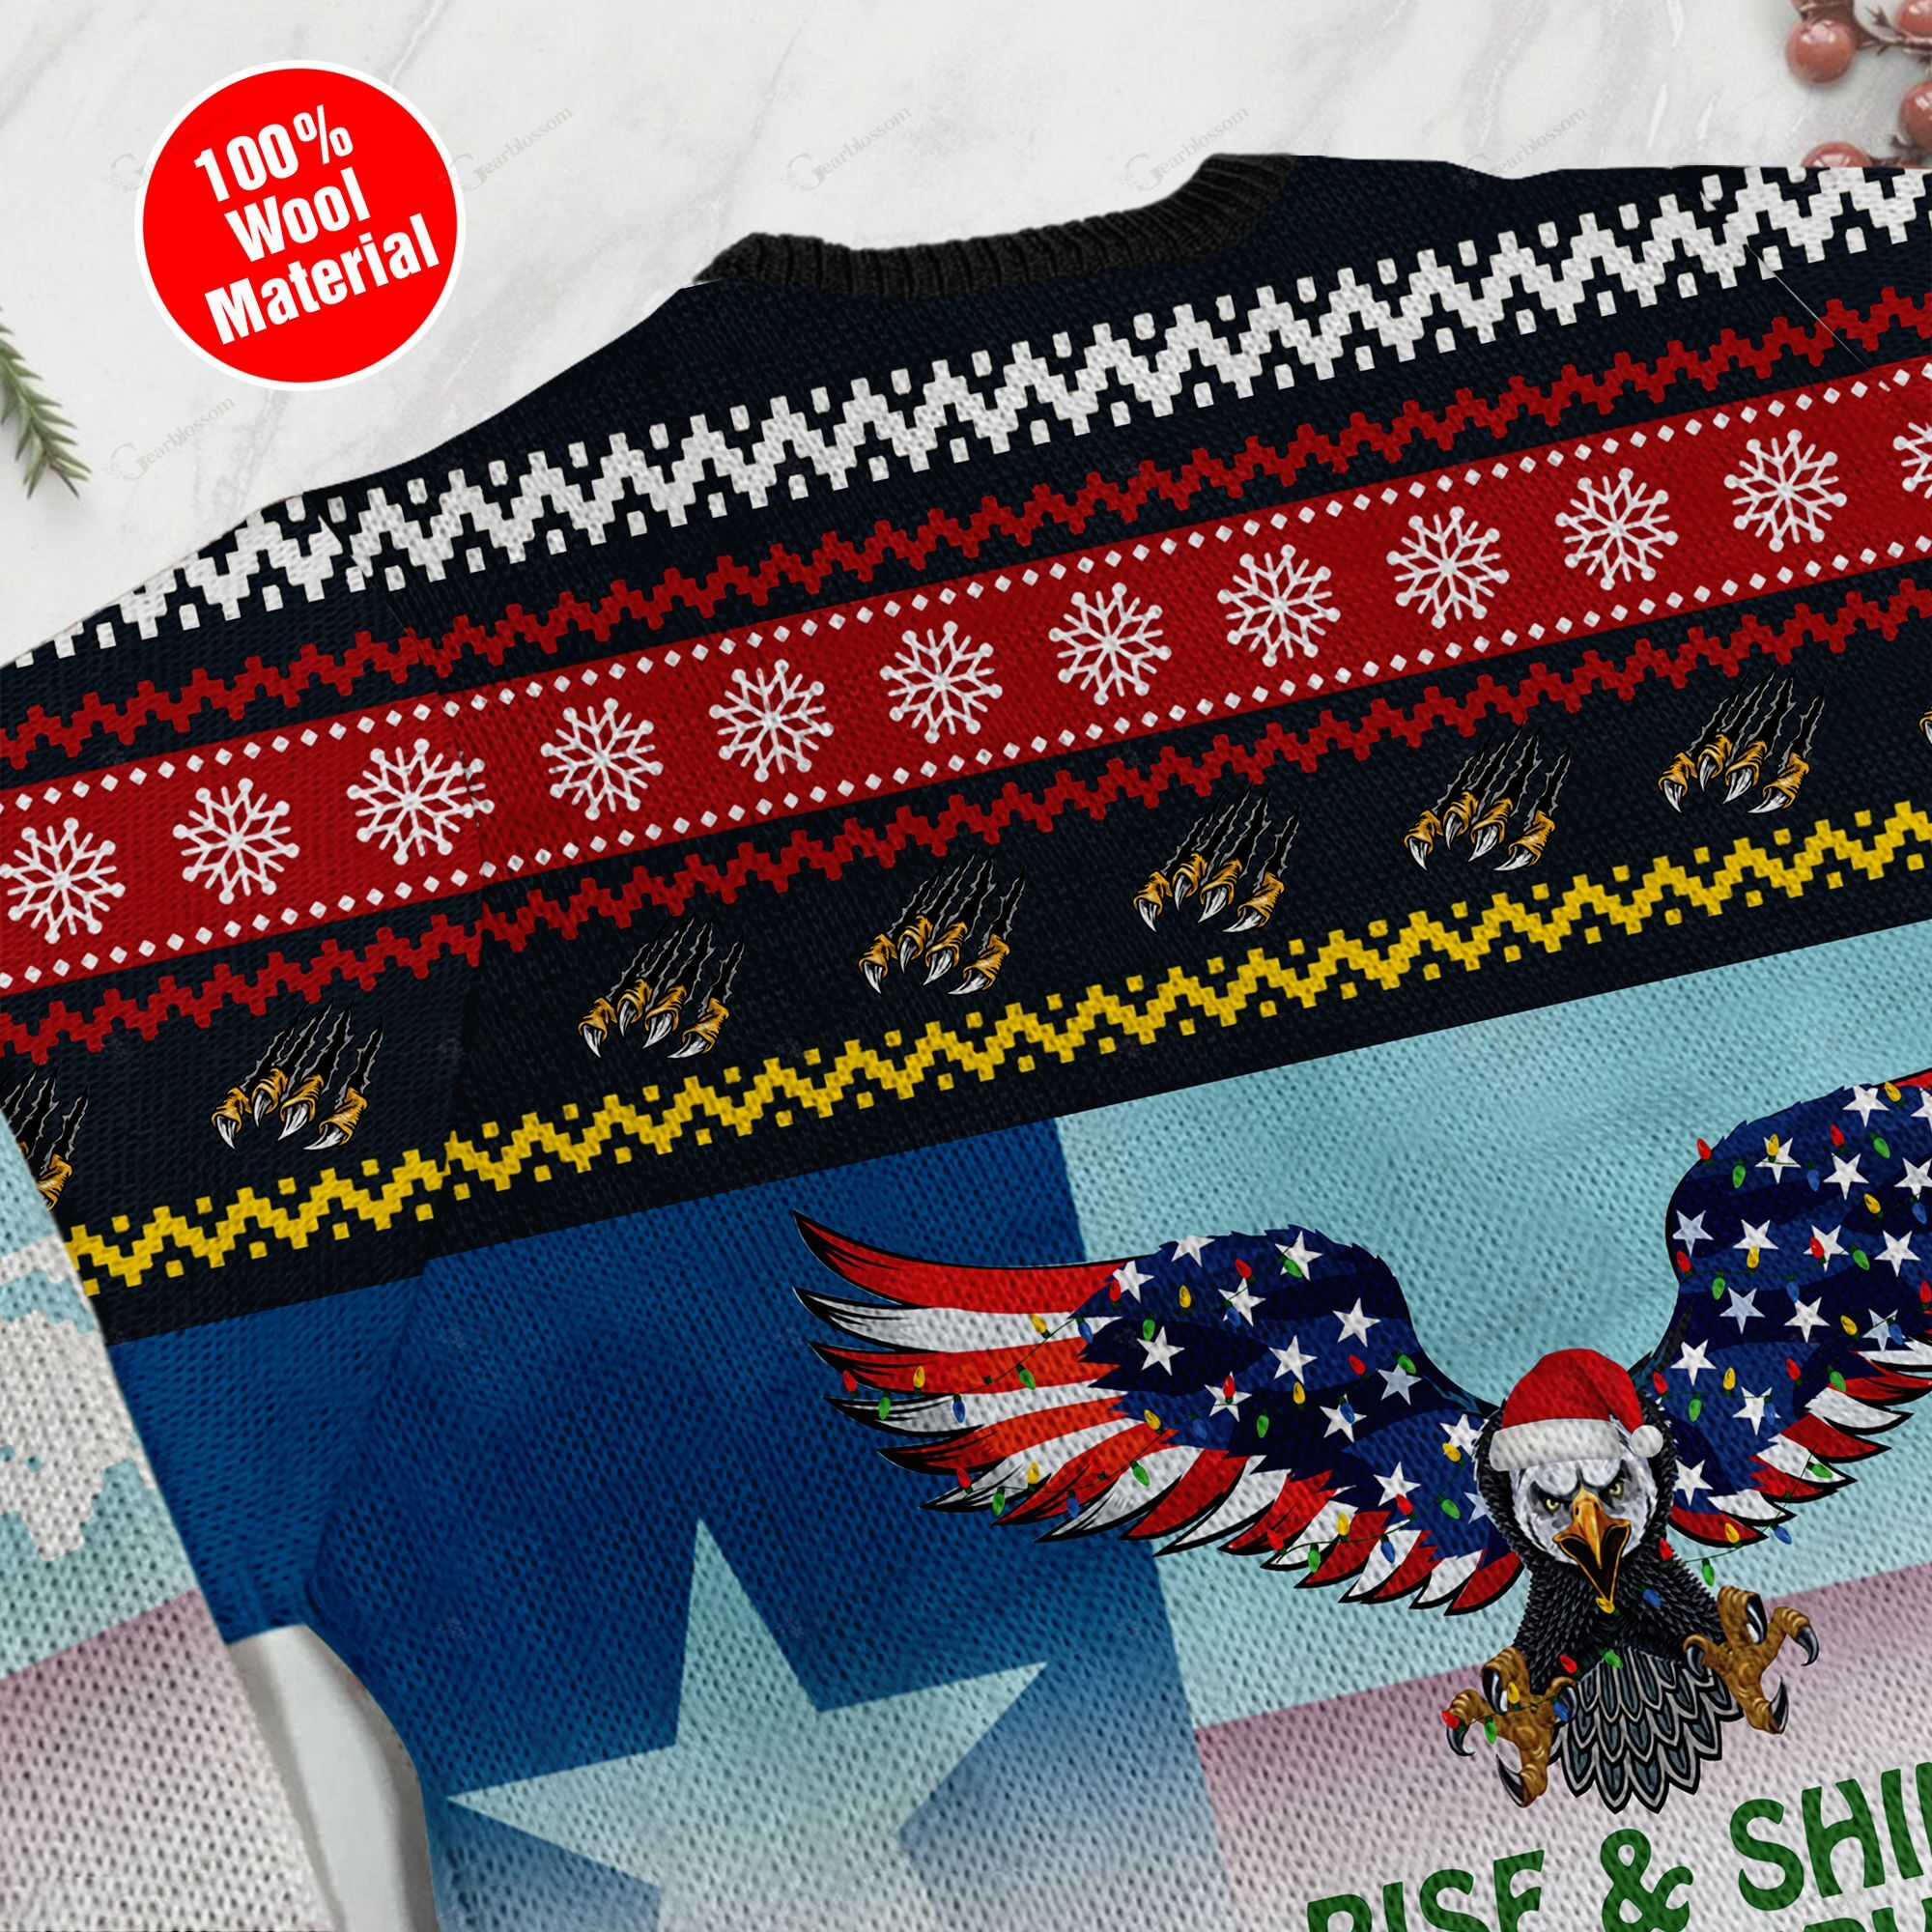 Rise And Shine It's Falconry Time Texas Eagle Ugly Christmas Wool Sweater For Texas People On Christmas Day TPLH